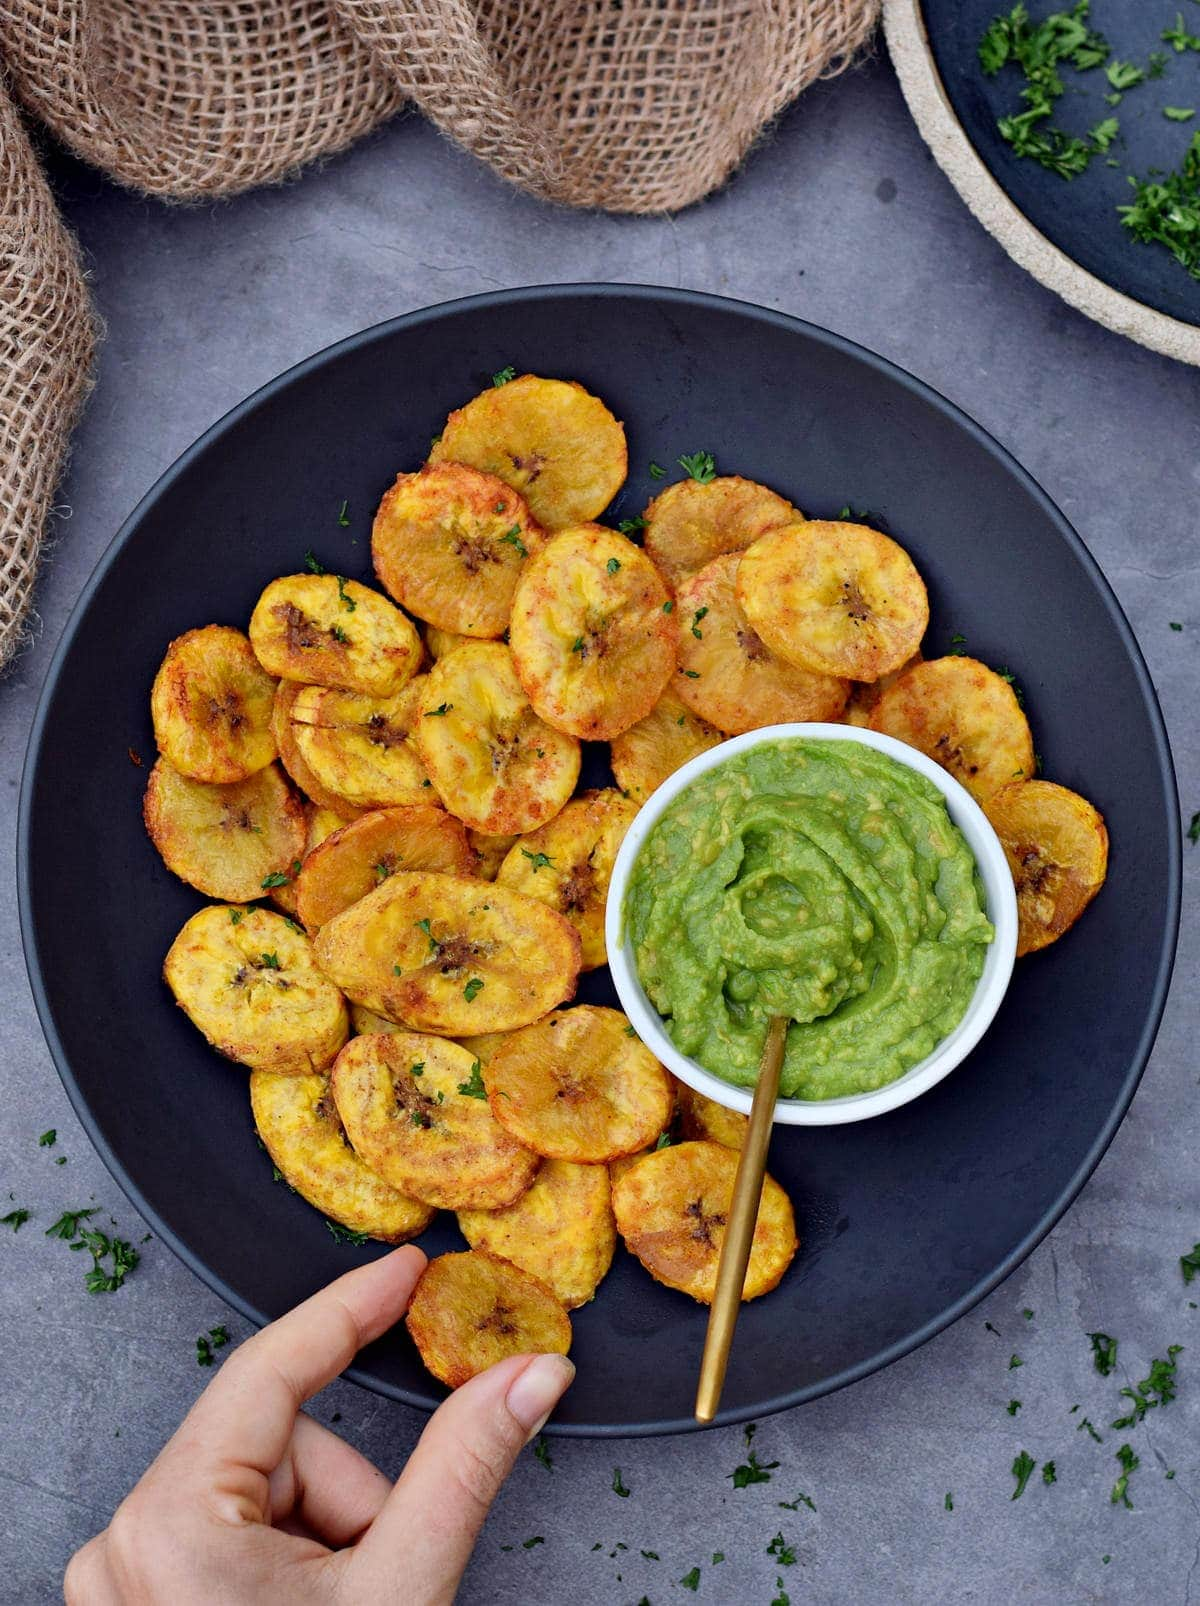 hand grabbing baked plantains in black bowl with guacamole dip